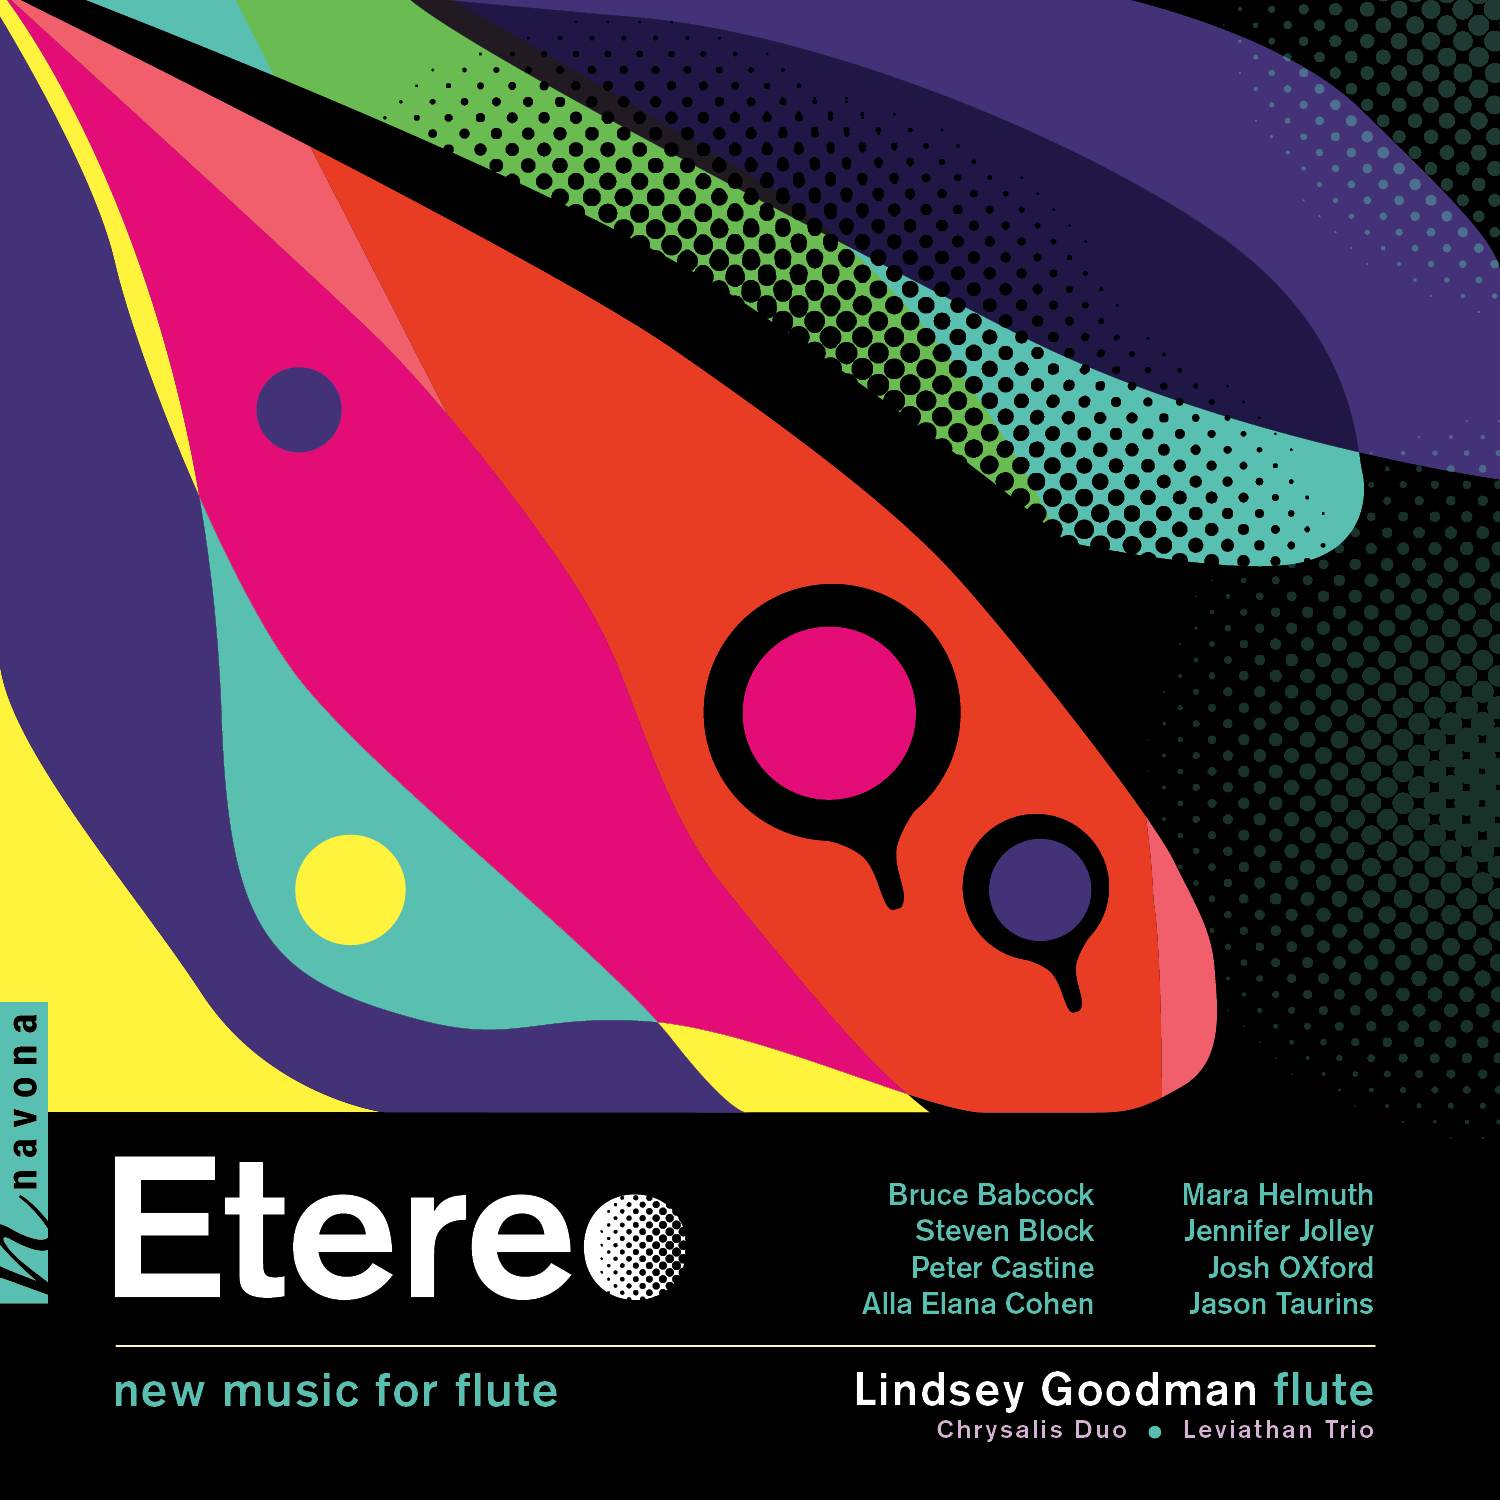 Etereo New Music for Flute, Album Cover Art